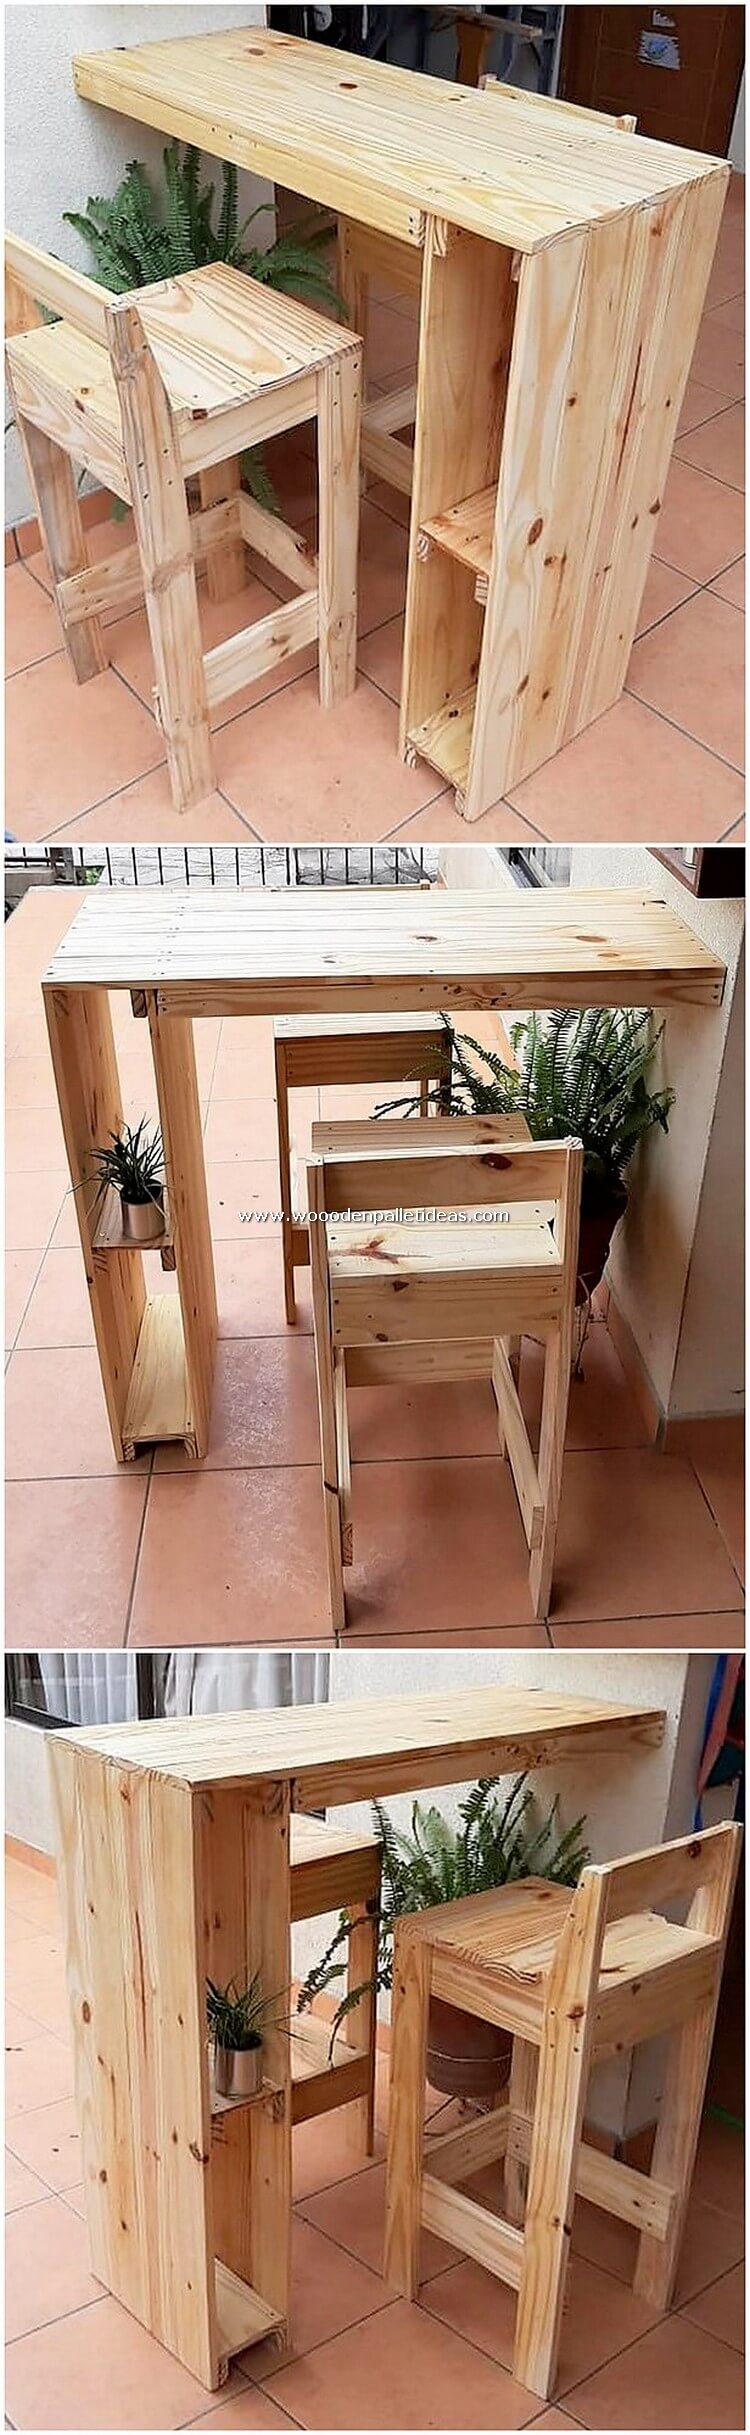 Pallet-Desk-Table-and-Chair